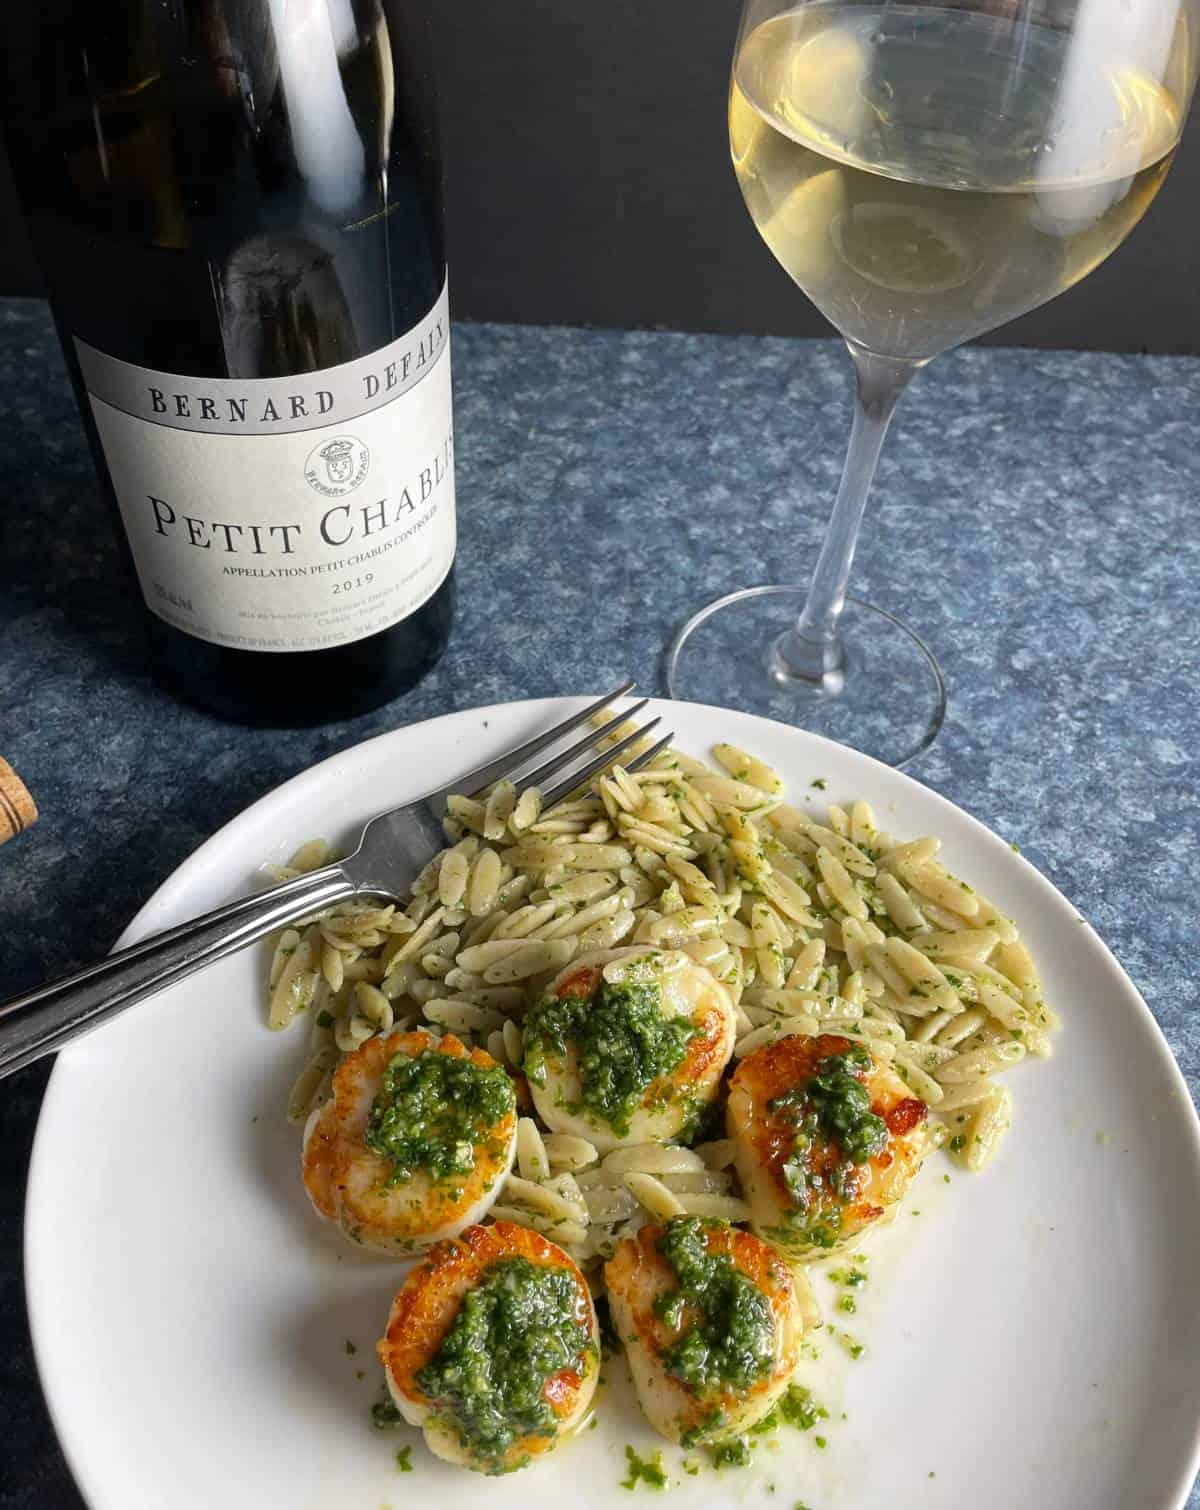 scallops served topped with pesto, and a bottle of Chablis white wine.